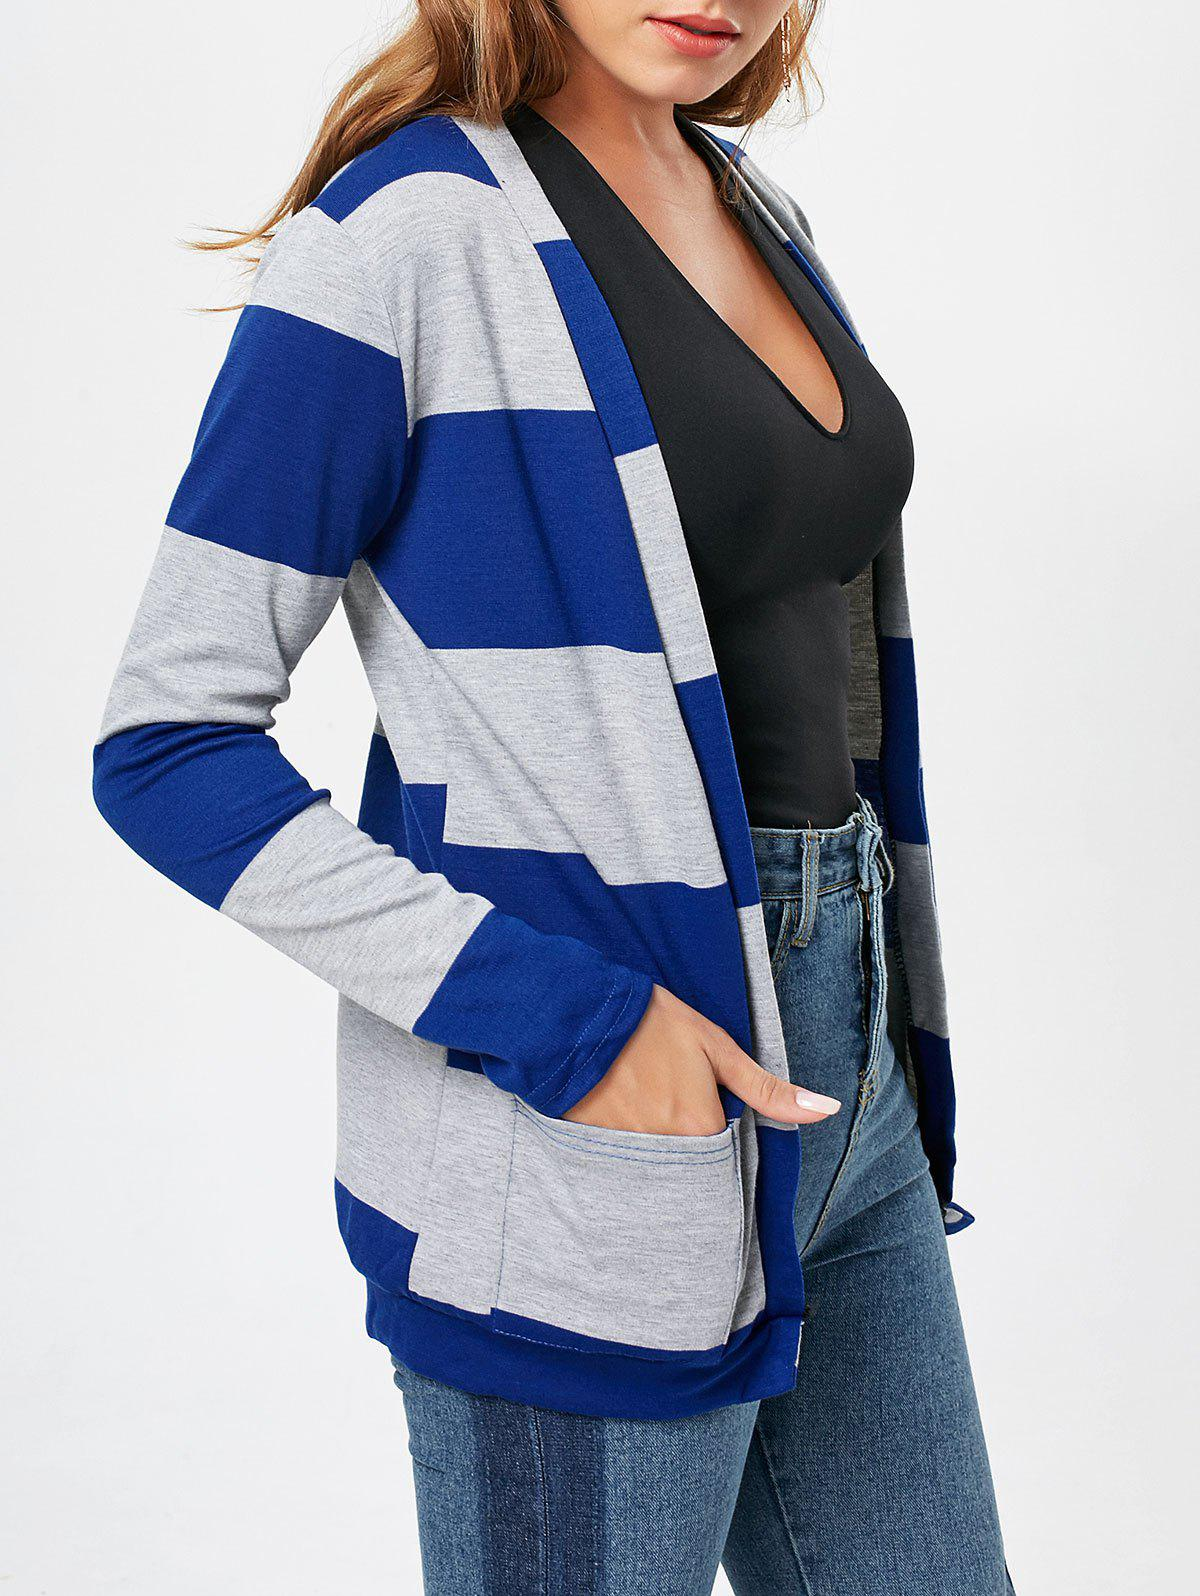 Charming Broad Striped Long Sleeve Cardigan For Women - BLUE S